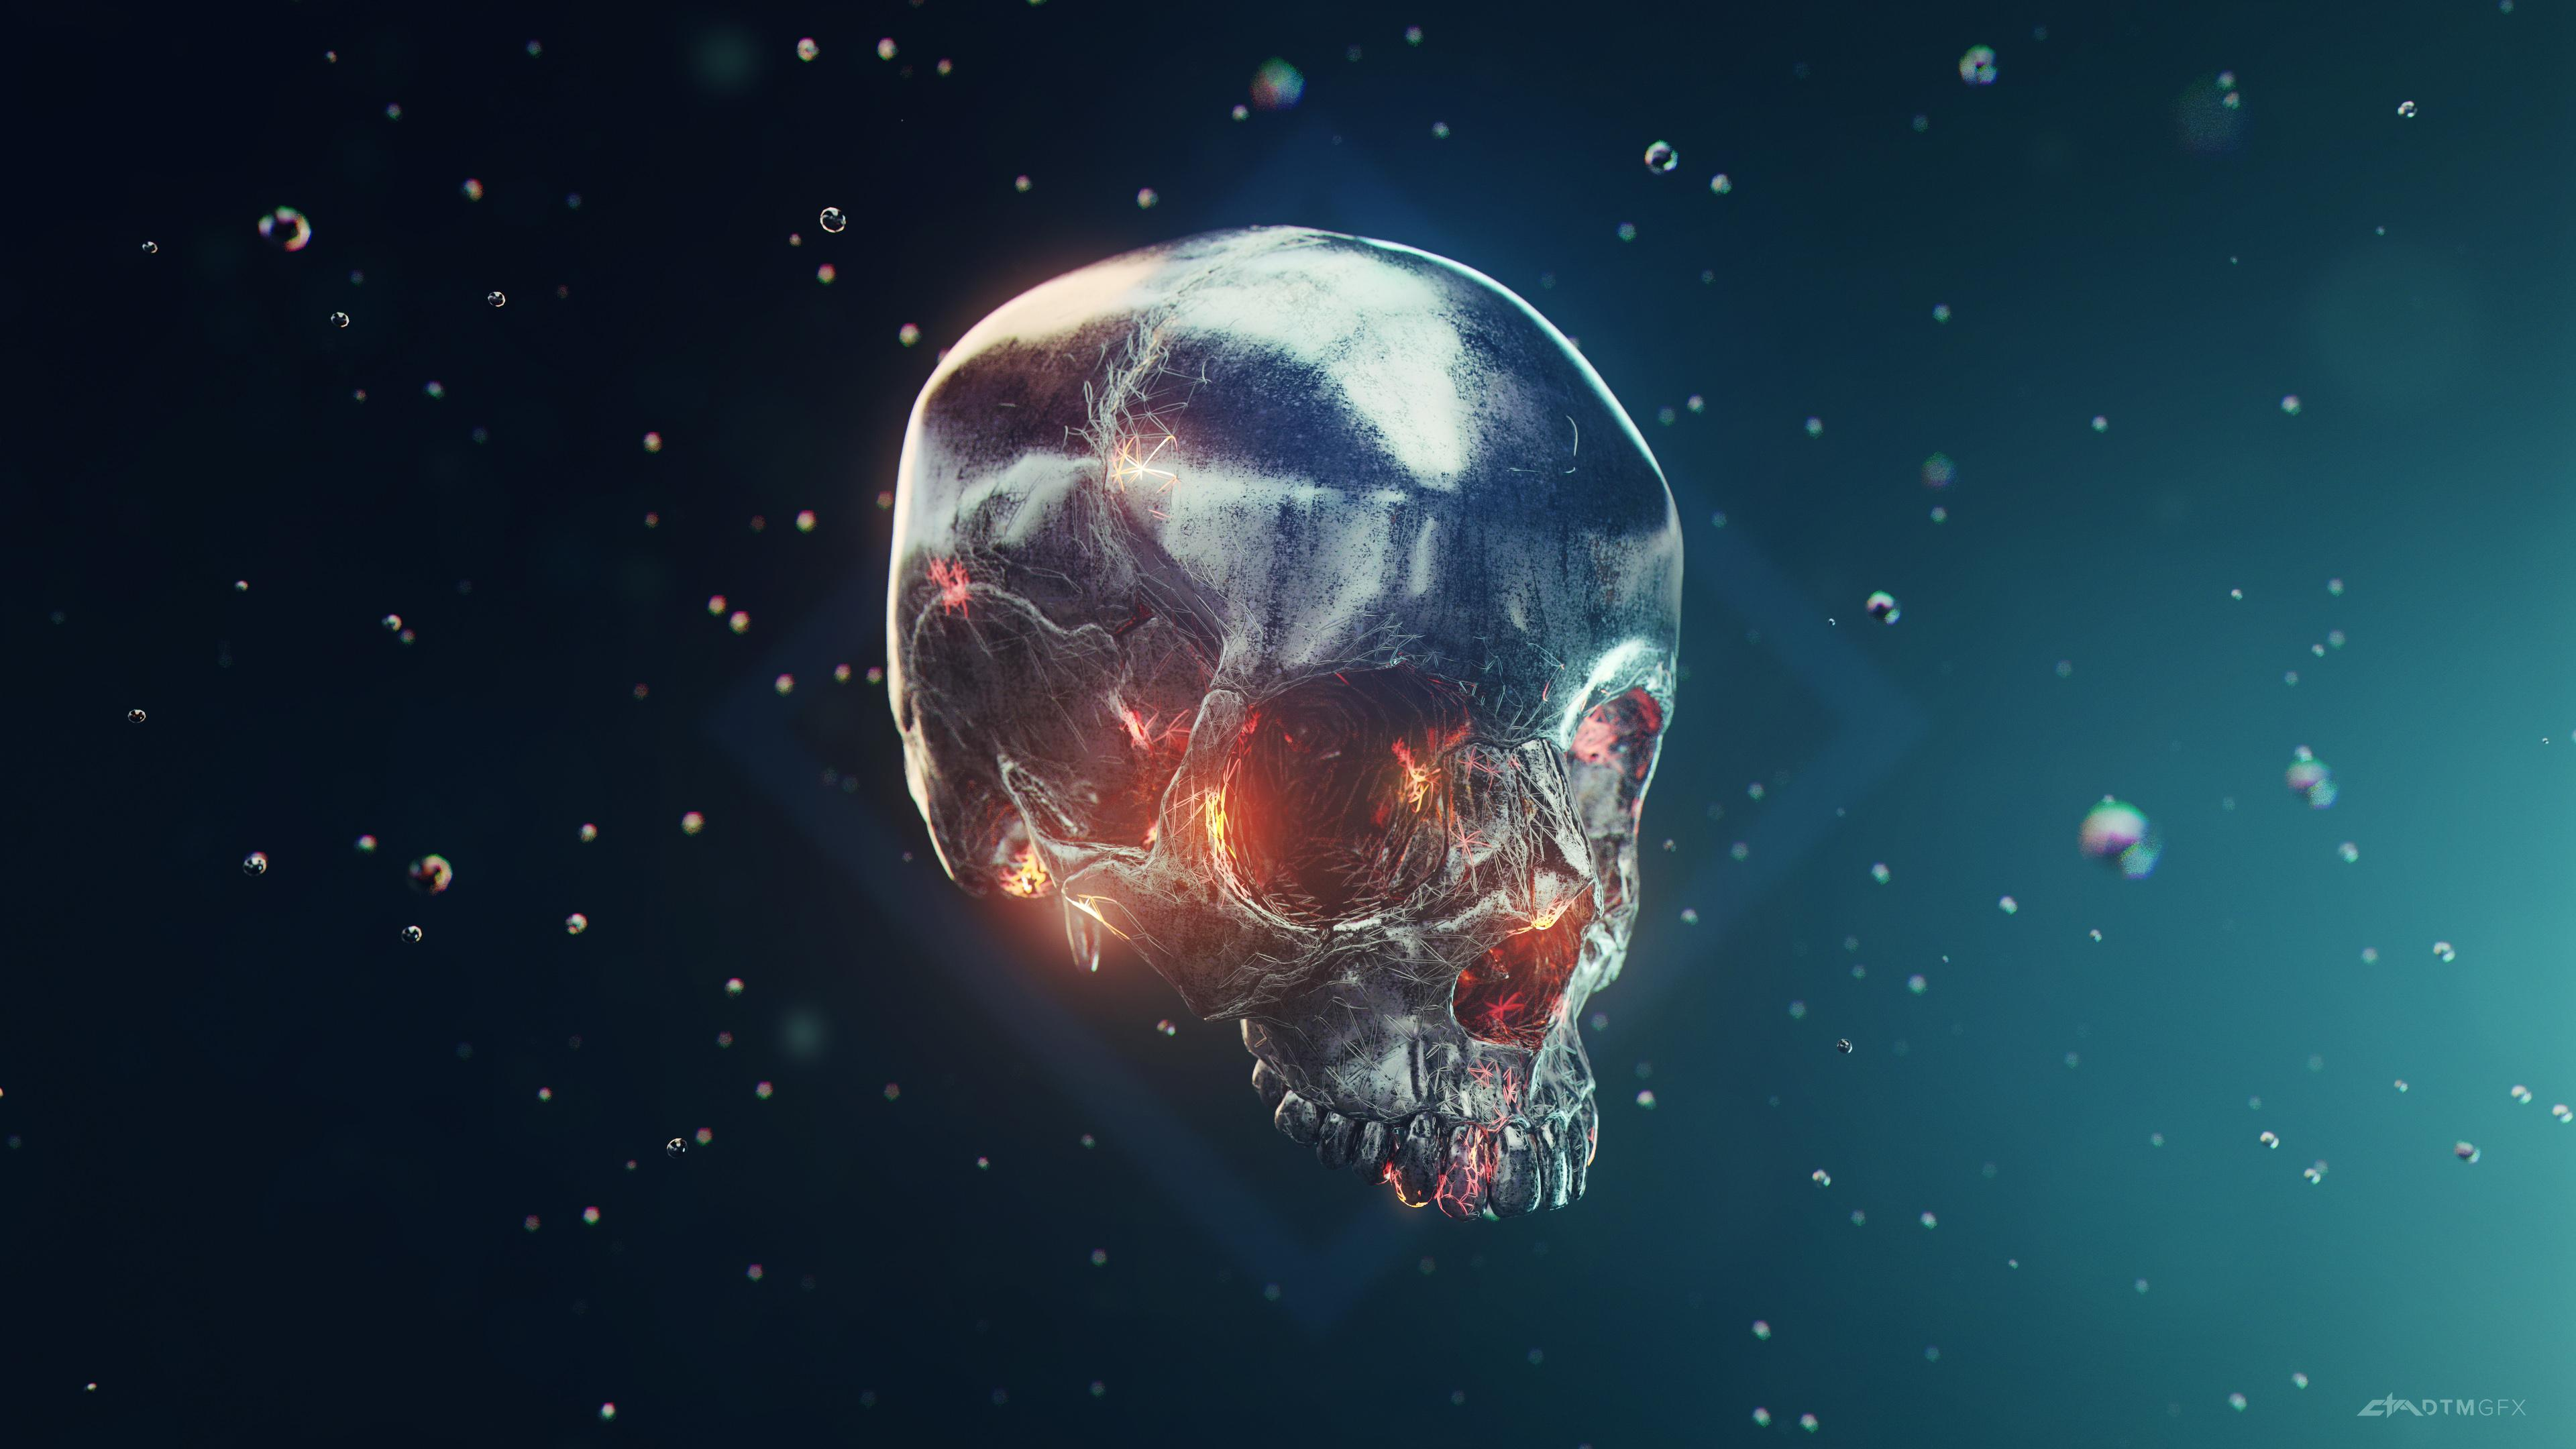 Skull 4k Wallpapers For Your Desktop Or Mobile Screen Free And